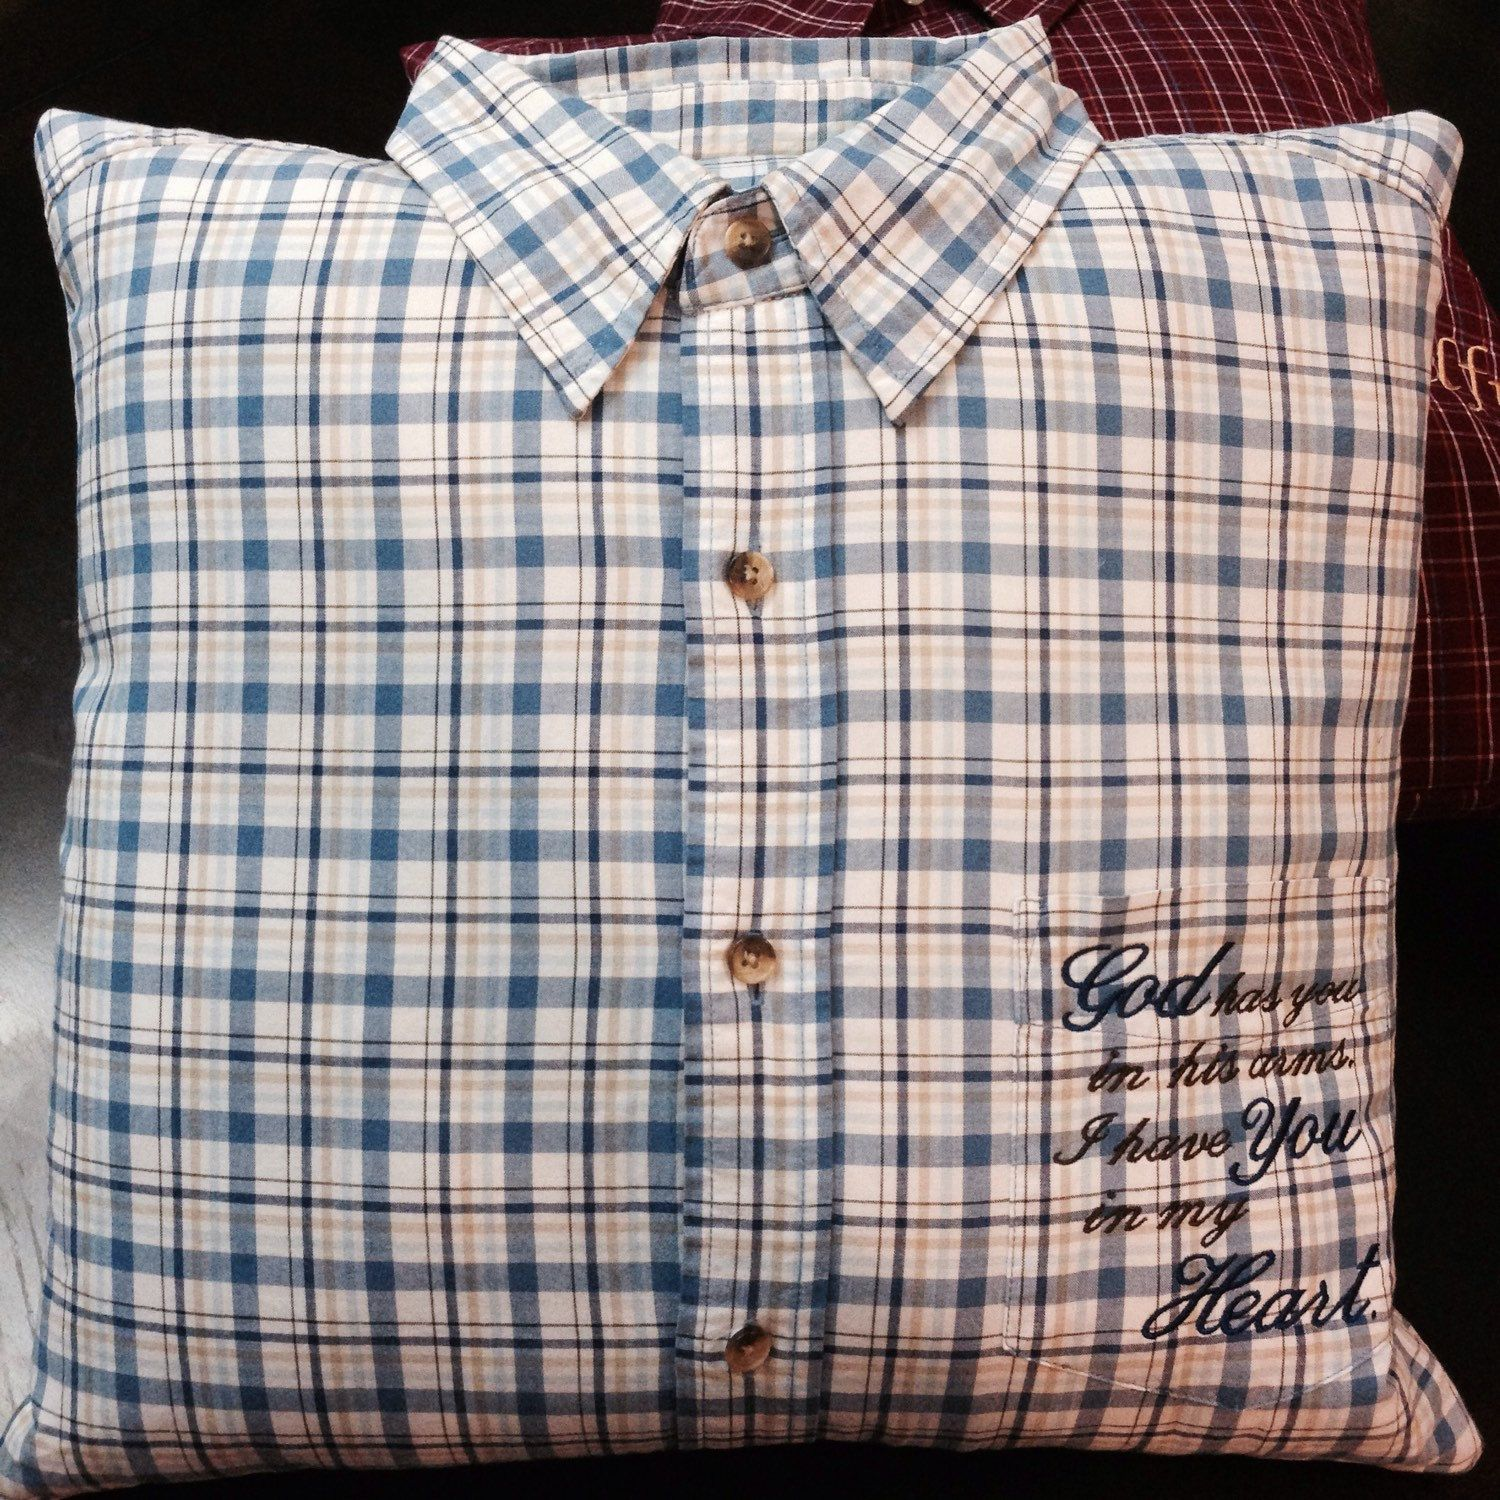 How to sew a memory pillow out of a shirt